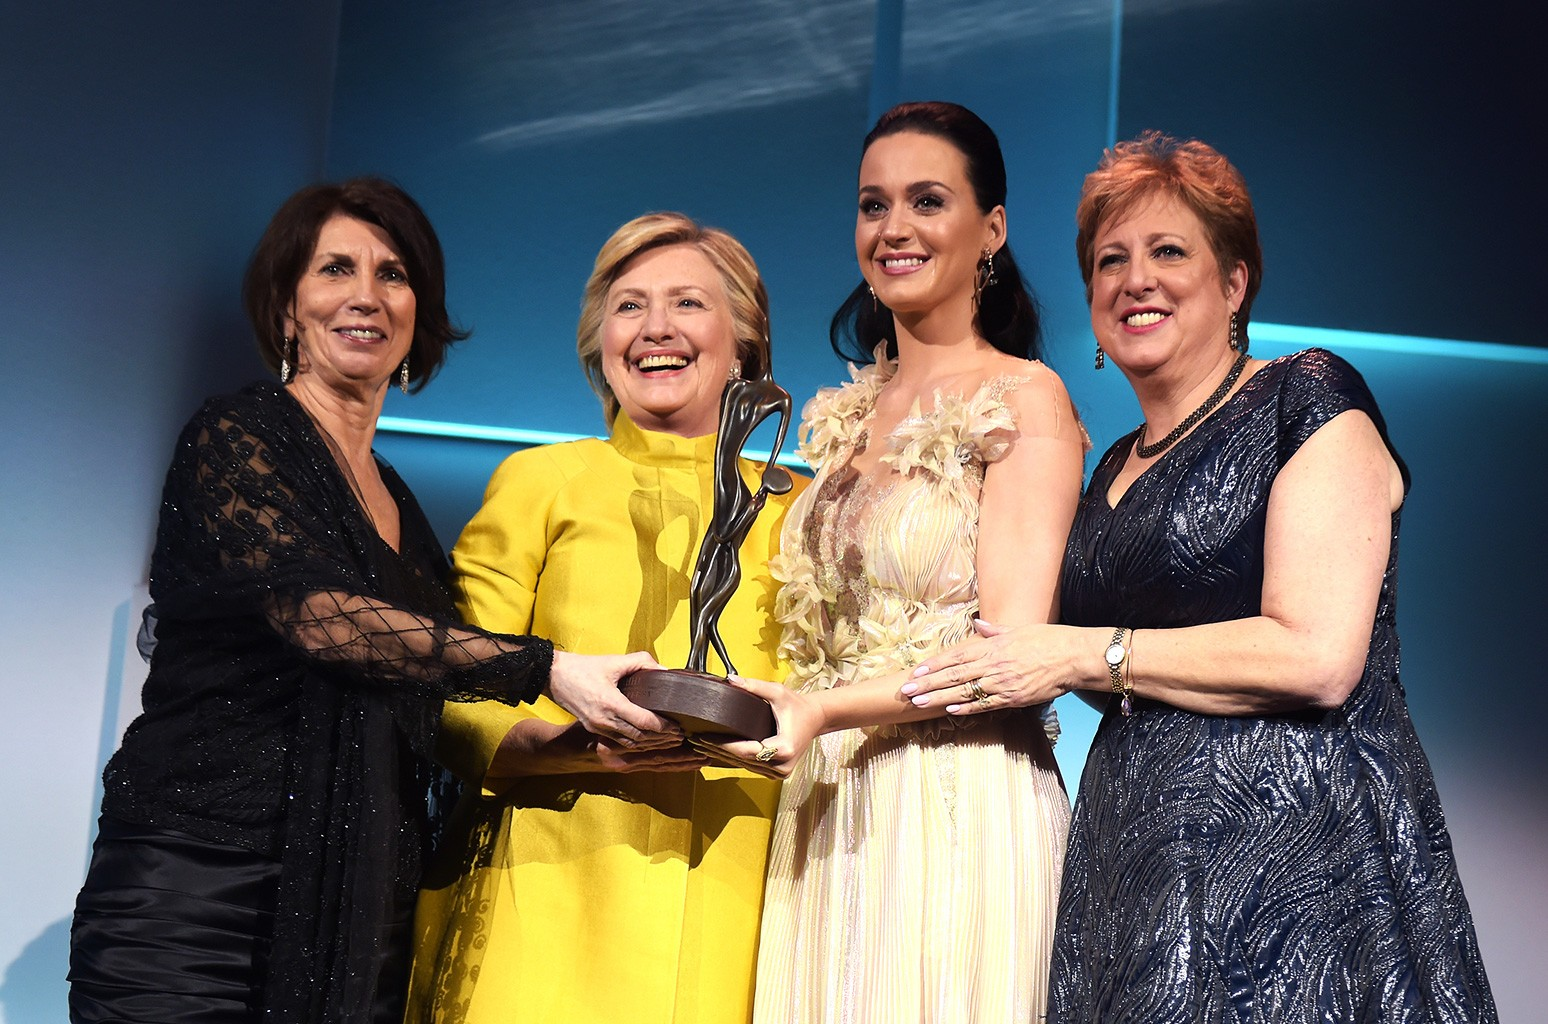 Pamela Fiori, Hillary Clinton, Katy Perry, and Caryl Stern speak on stage during the 12th annual UNICEF Snowflake Ball at Cipriani Wall Street on Nov. 29, 2016 in New York City.